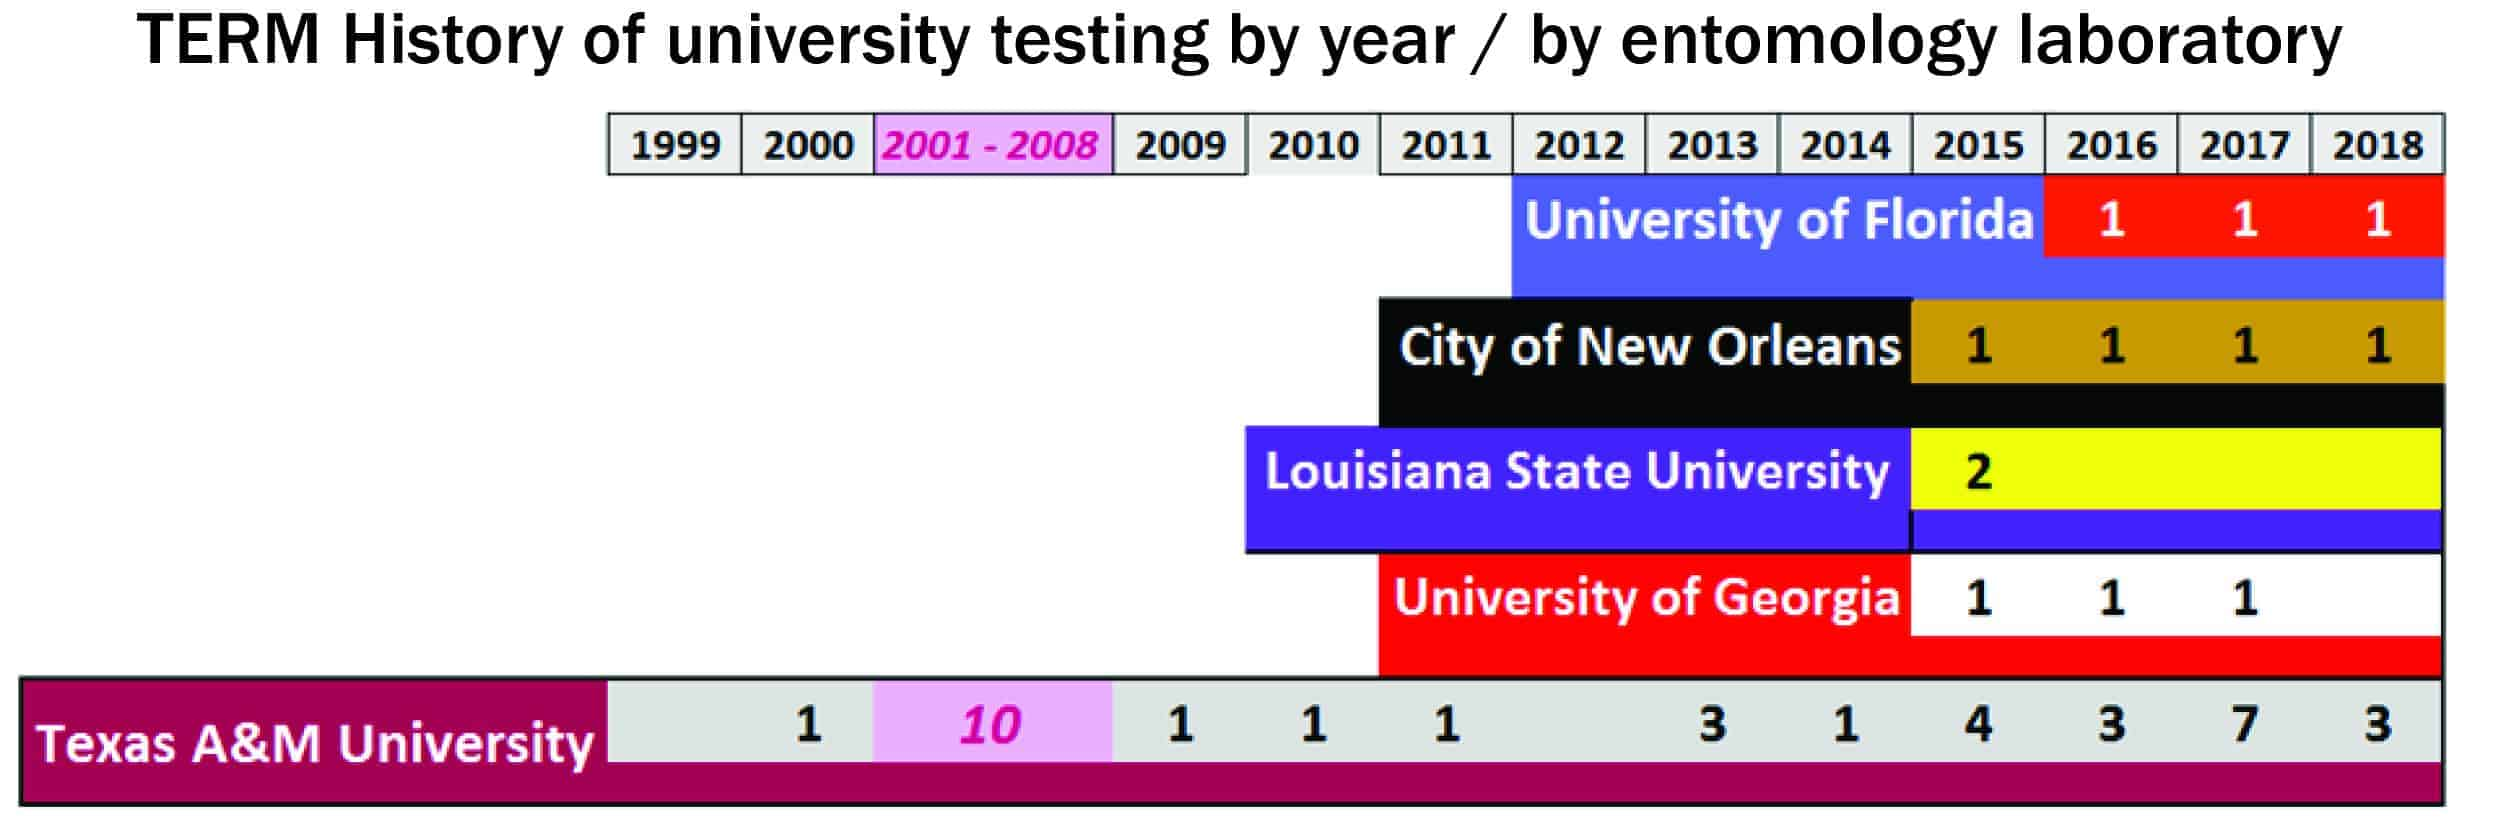 TERM History of University Testing